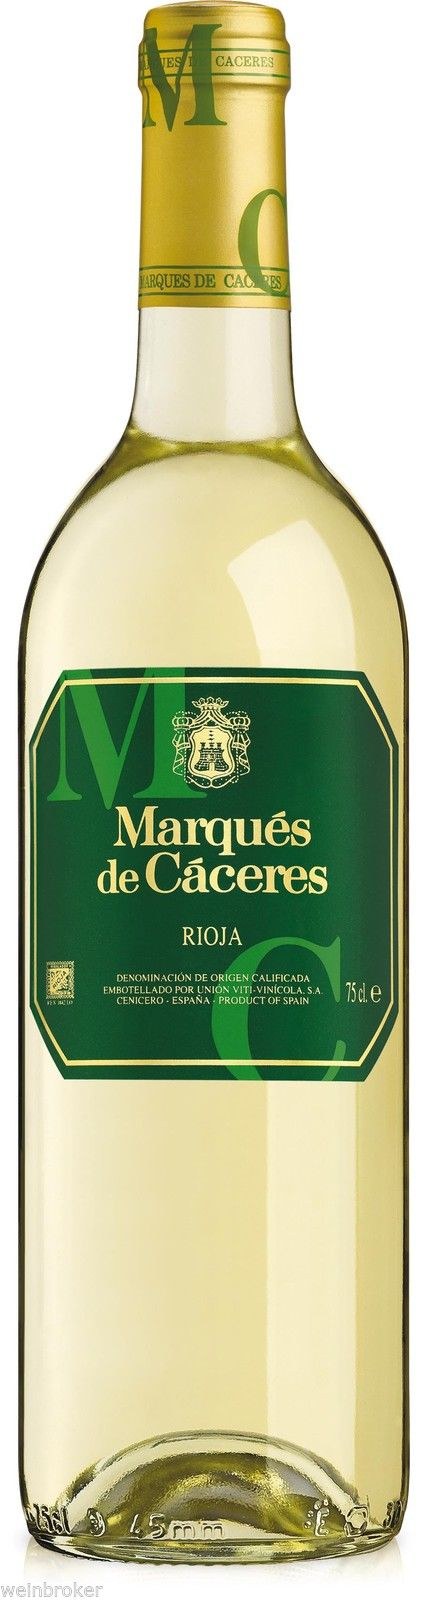 Marques de Caceres Blanco trocken 2016 Rioja DO